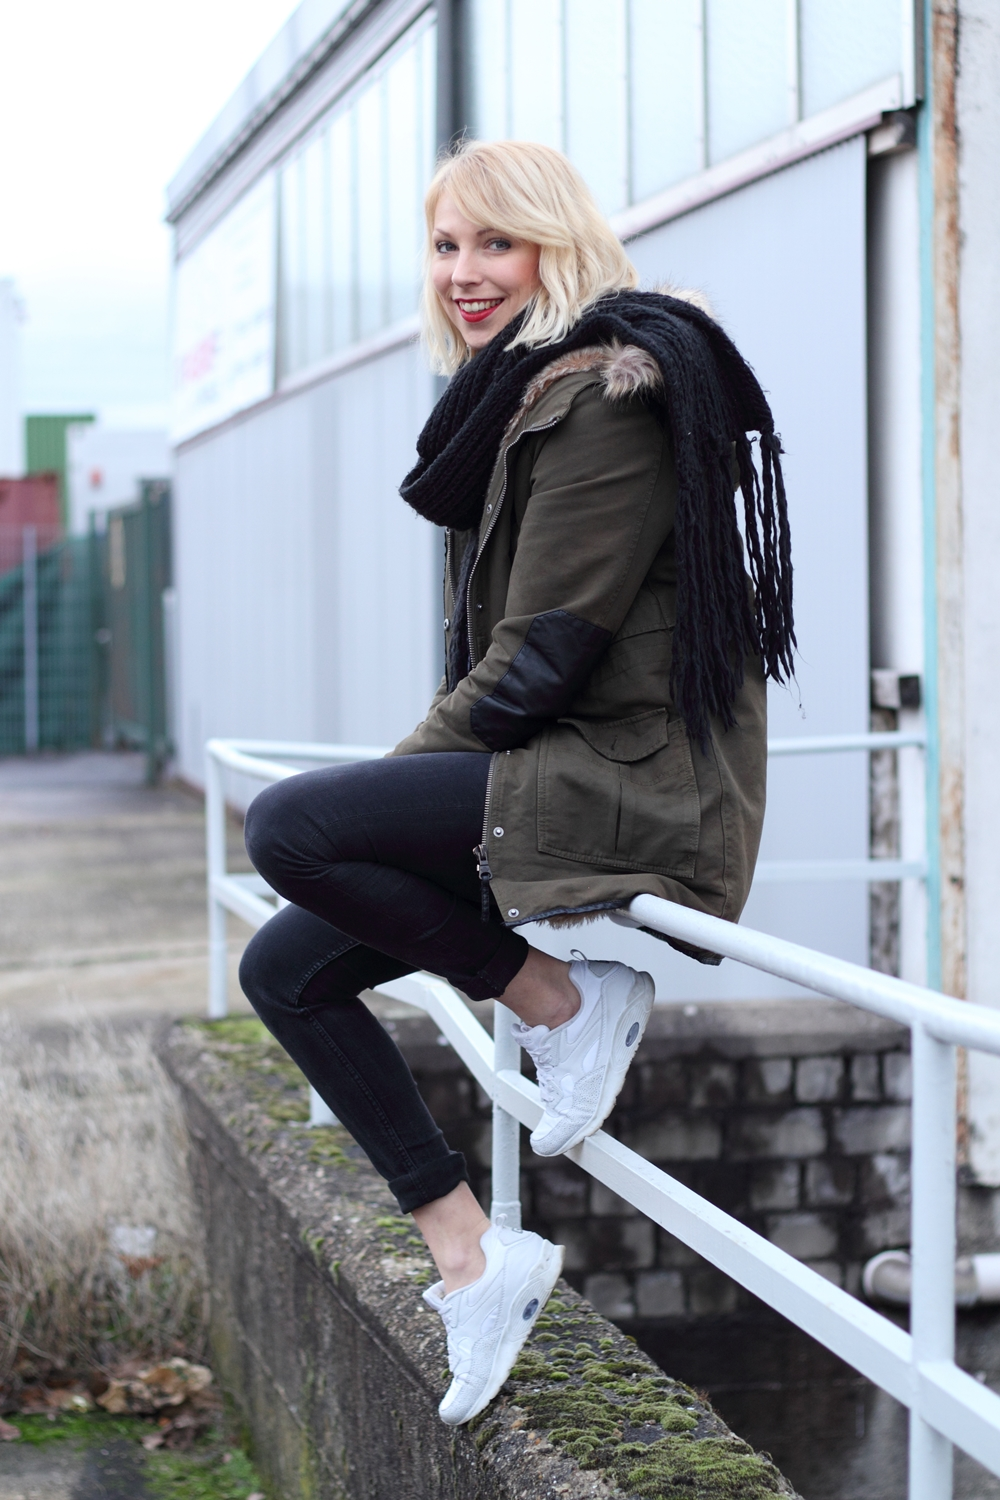 fashionbloggeri karlsruhe outfit parka zara sneaker deichmann jeans sweater schal 13 lavie deboite. Black Bedroom Furniture Sets. Home Design Ideas